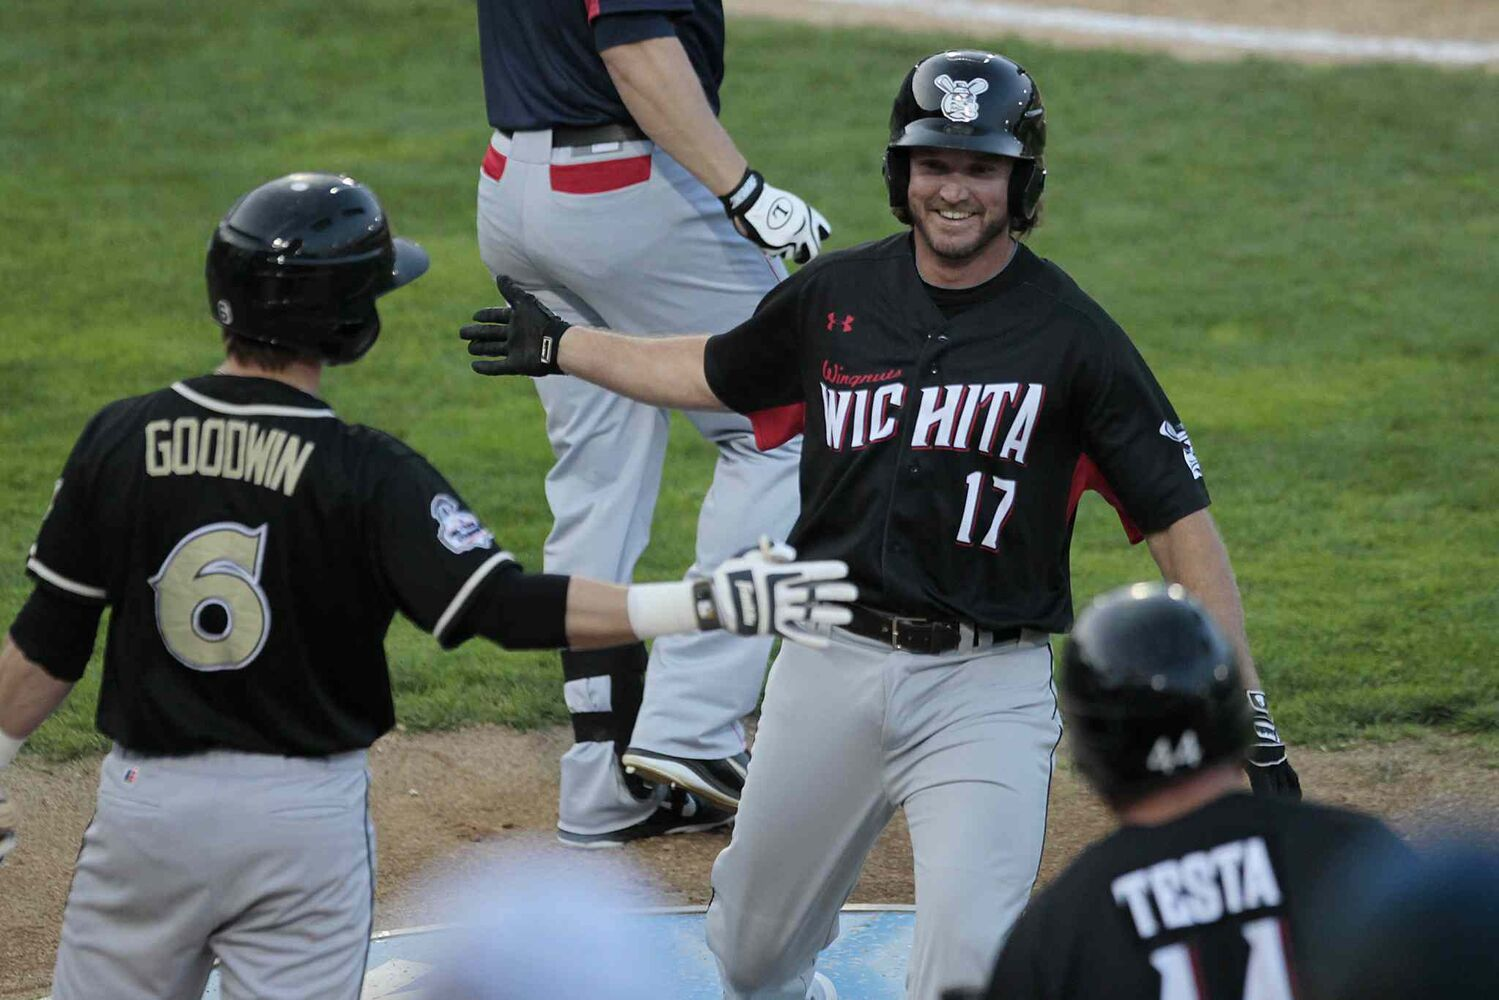 Witchita Wingnuts' Patrick Mincey (#17) hits a home-run in the 2014 American Association All-Star game in Winnipeg Tuesday. (John Woods / Winnipeg Free Press)